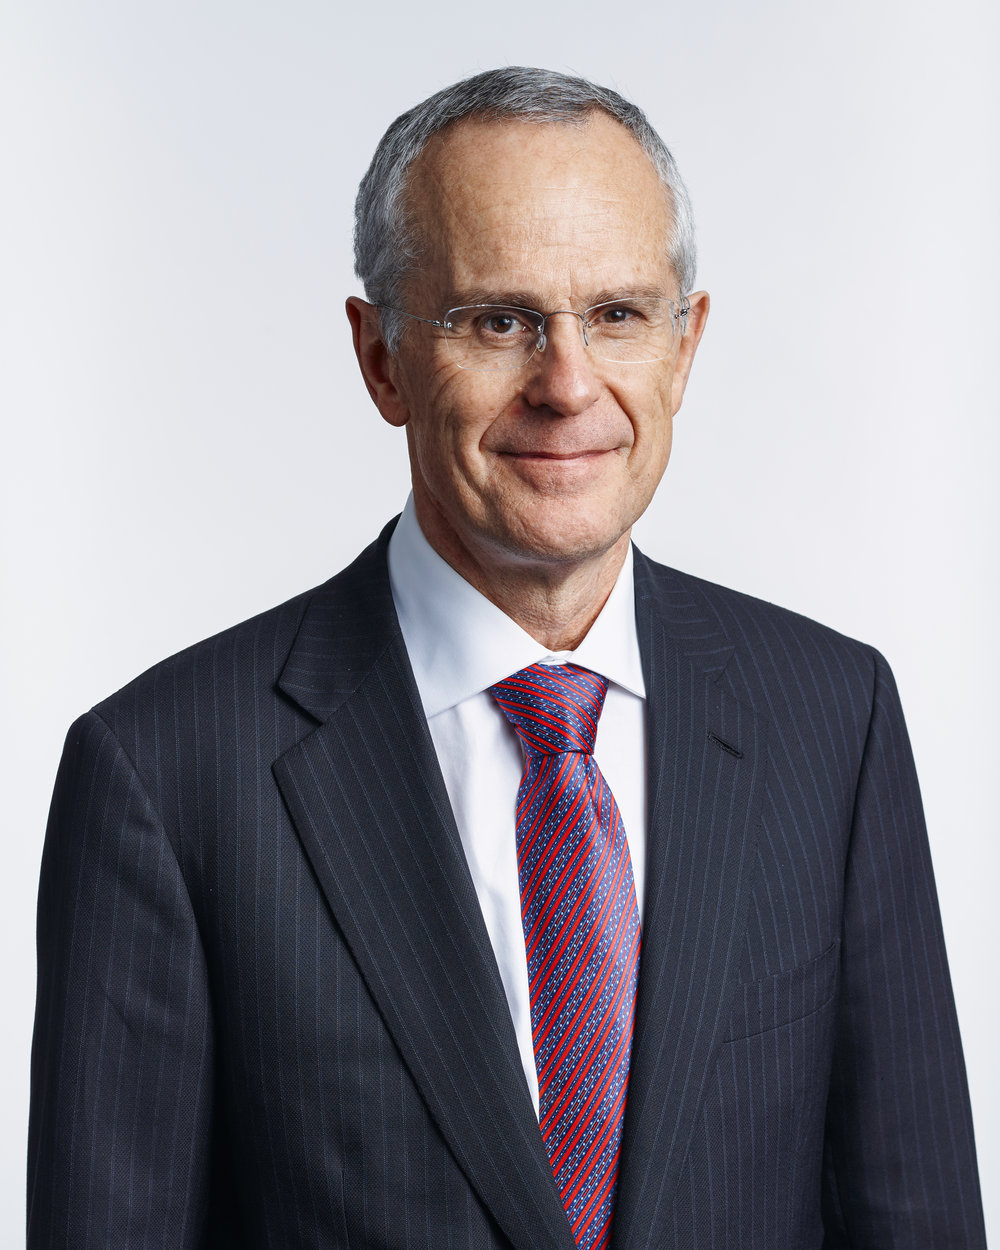 Rod Sims, Chairman of the ACCC (Not the creator of The Sims).